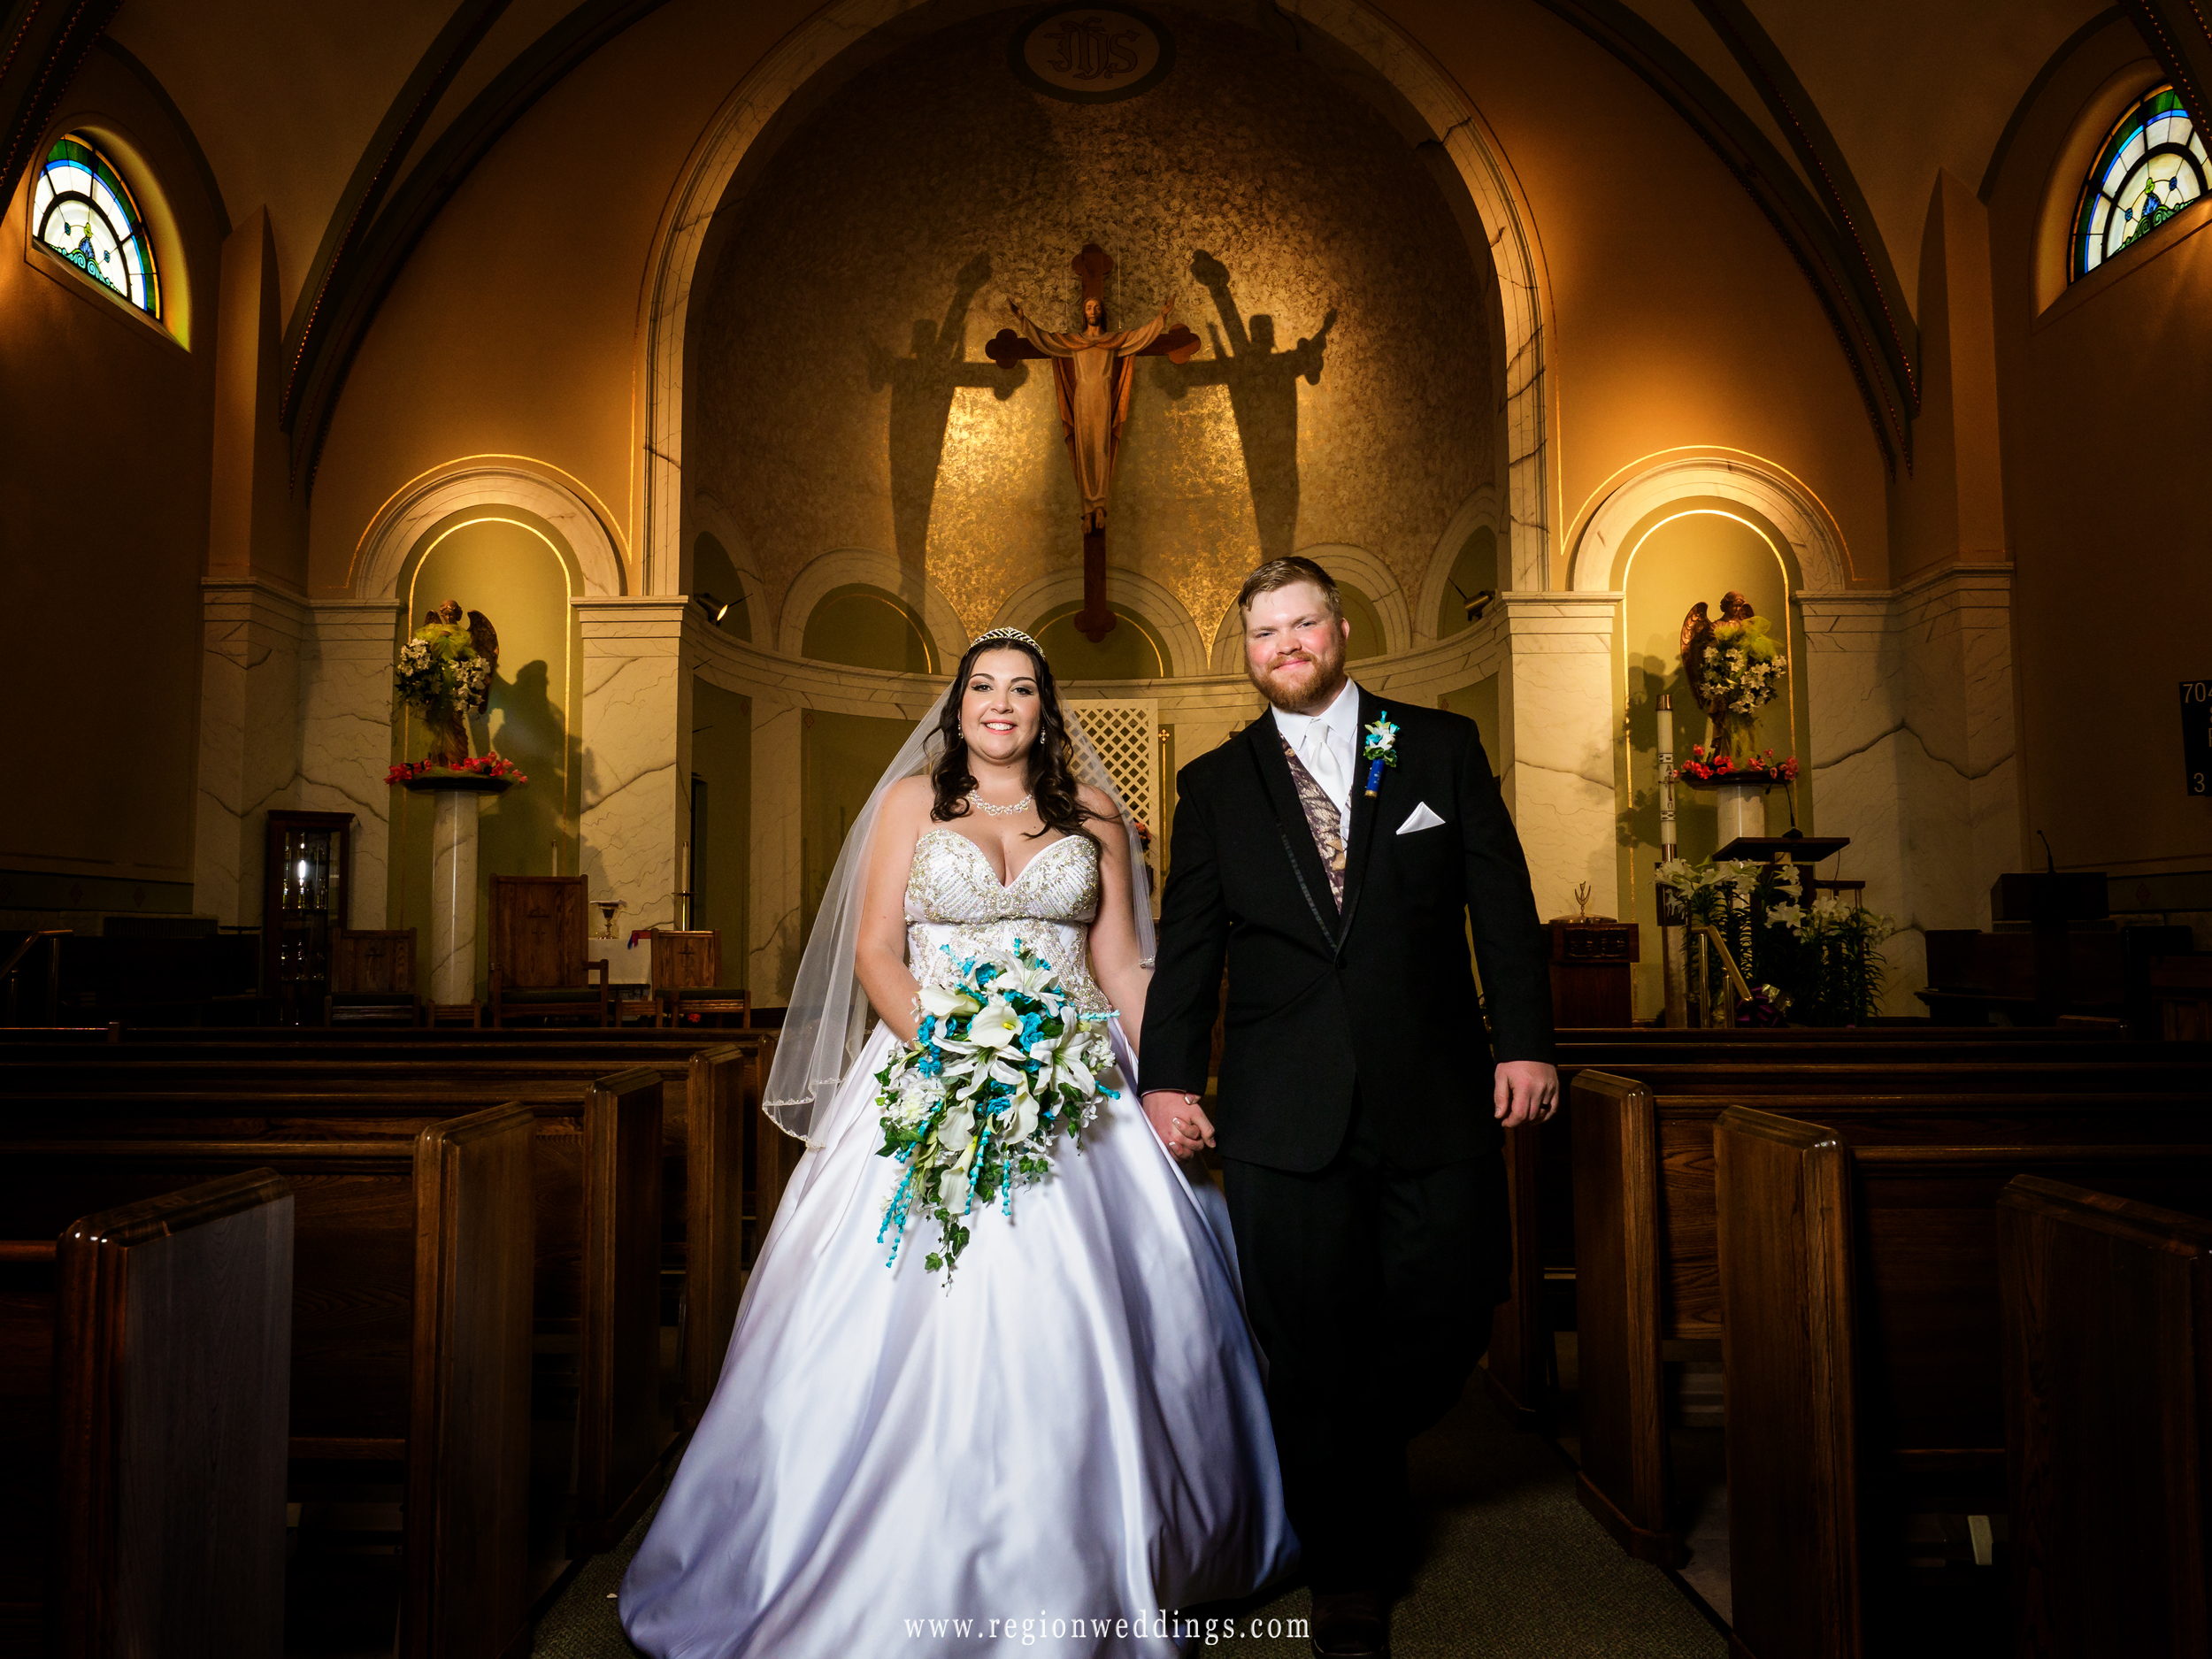 Bride and groom walk in the center aisle of church.